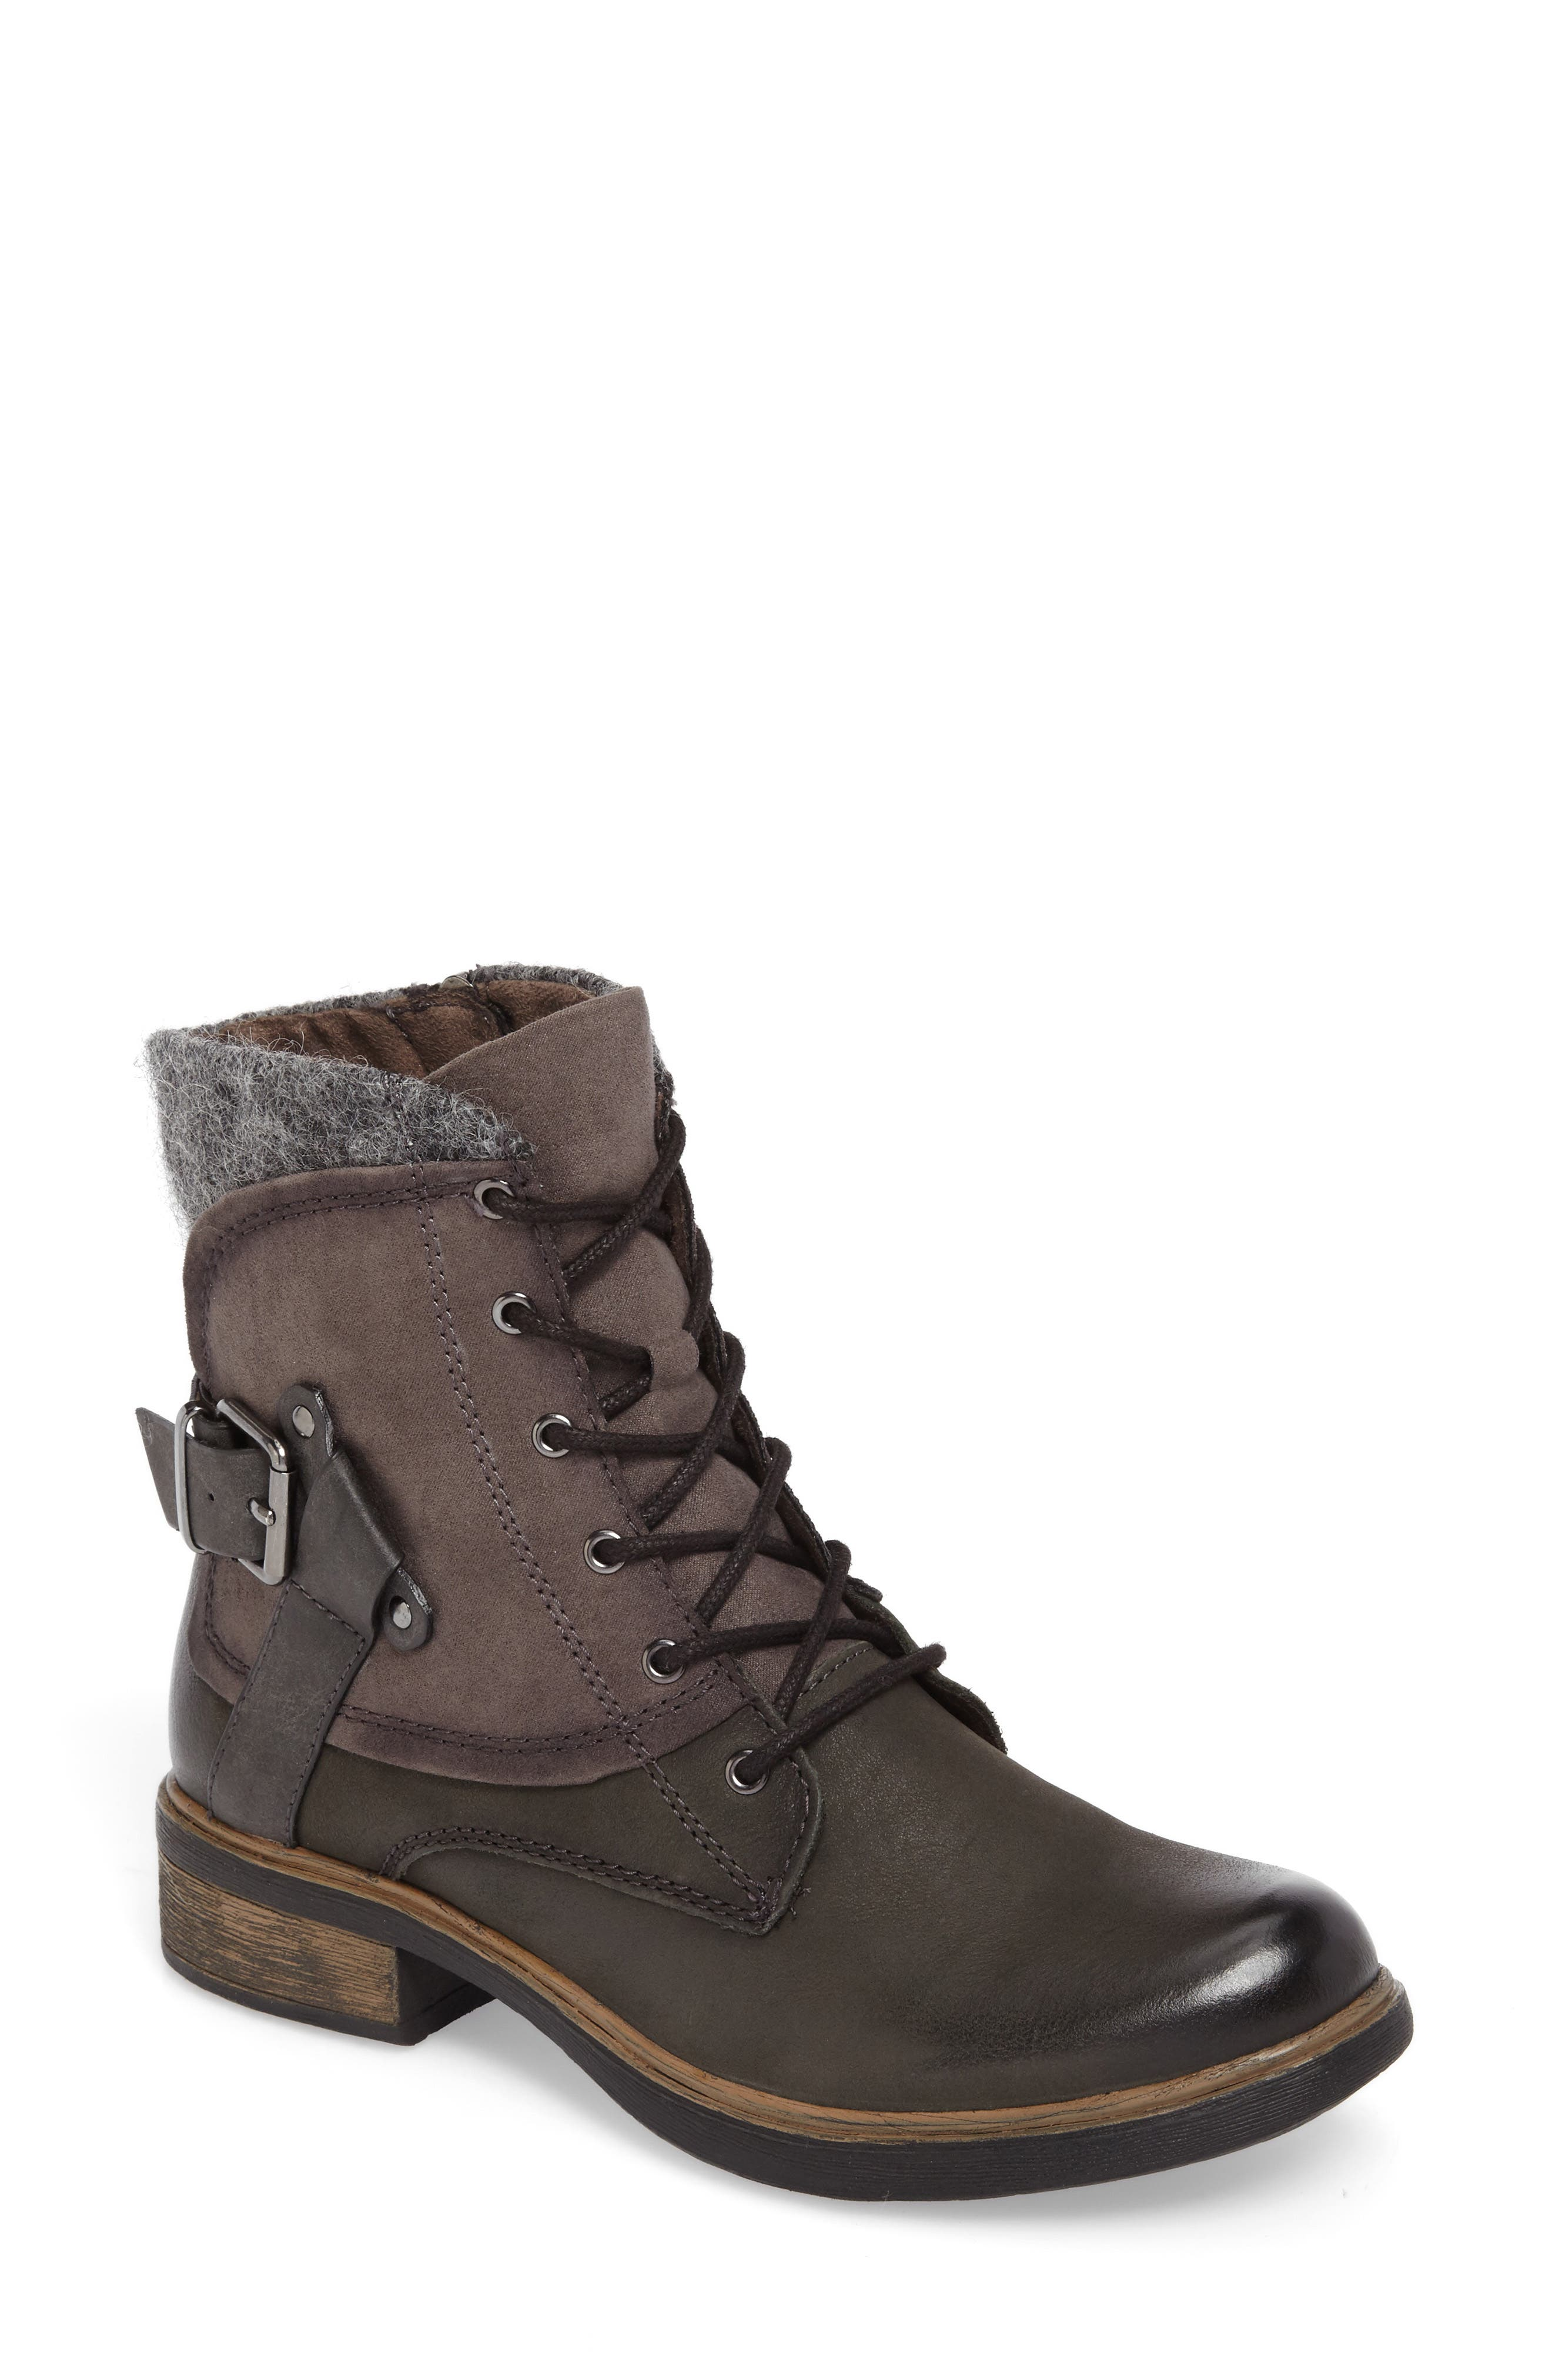 Alternate Image 1 Selected - Tamaris Helios Lace-Up Bootie (Women)